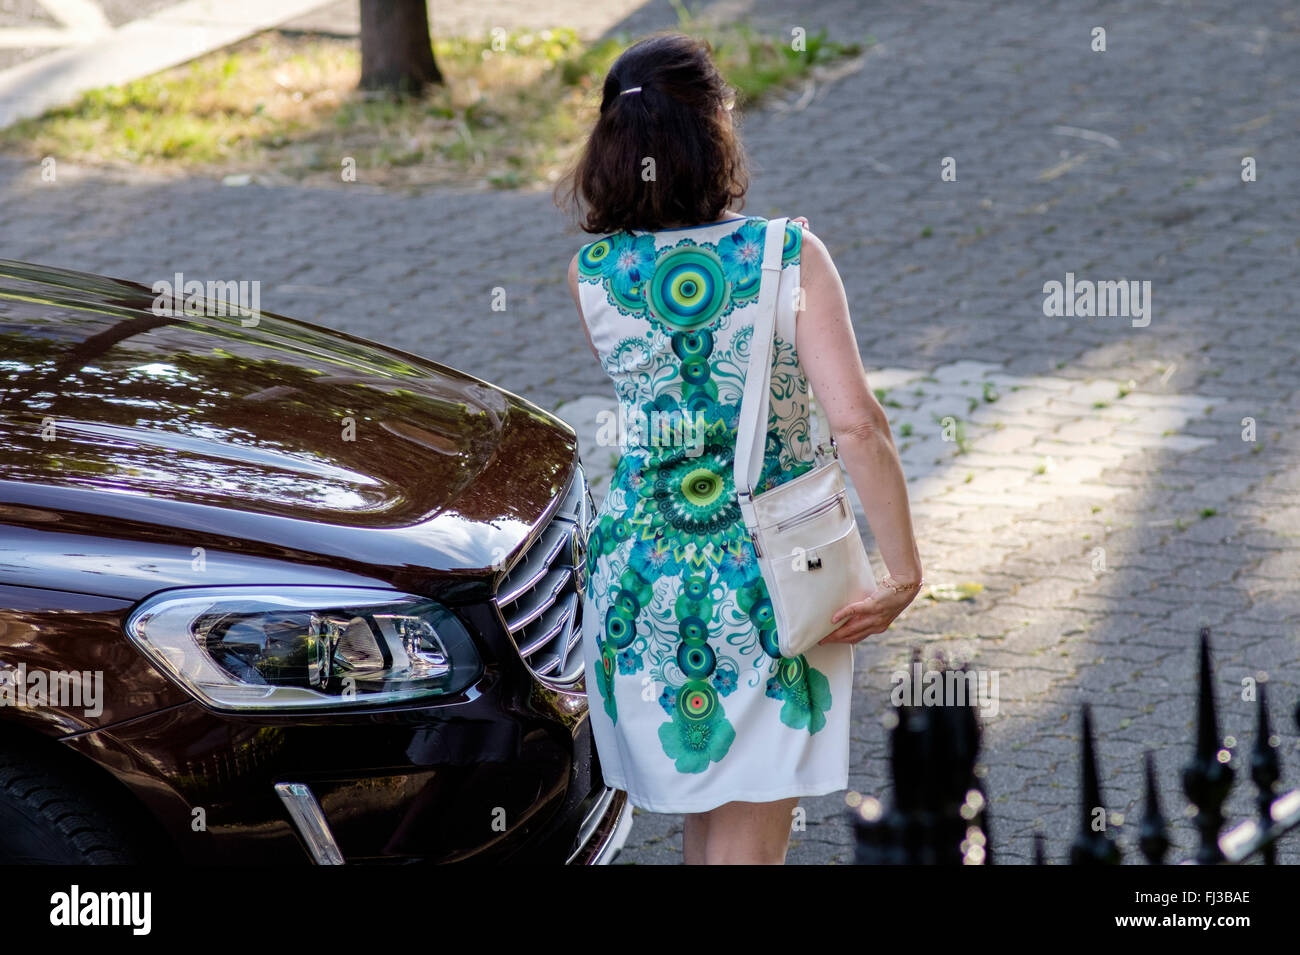 Rear view of woman with green dress walking on street, parked car France Europe - Stock Image